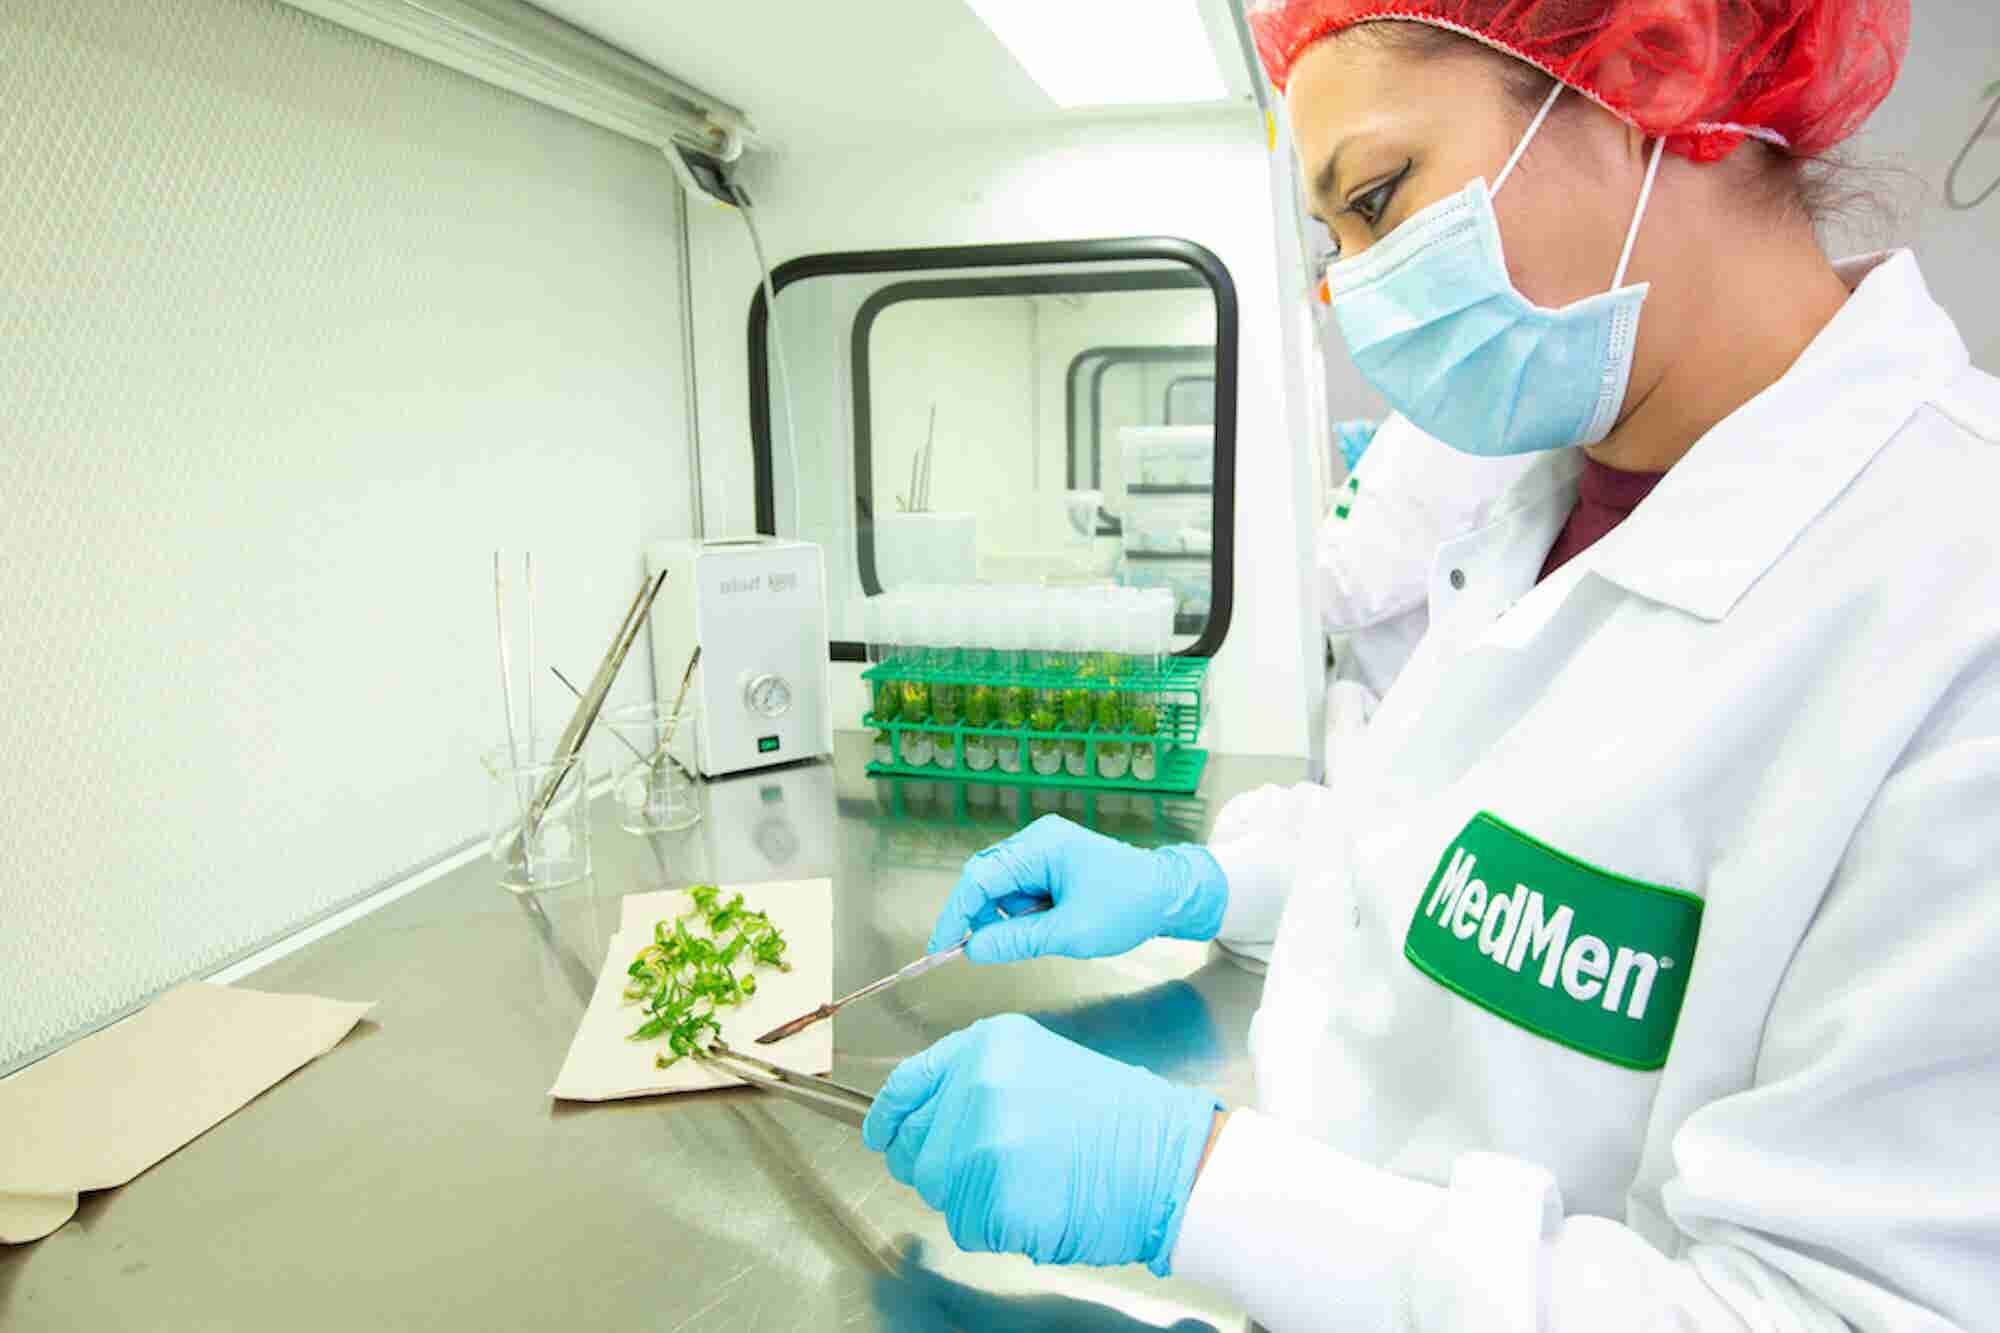 Breaking: MedMen Acquires PharmaCann to Become Largest Cannabis Company in U.S.